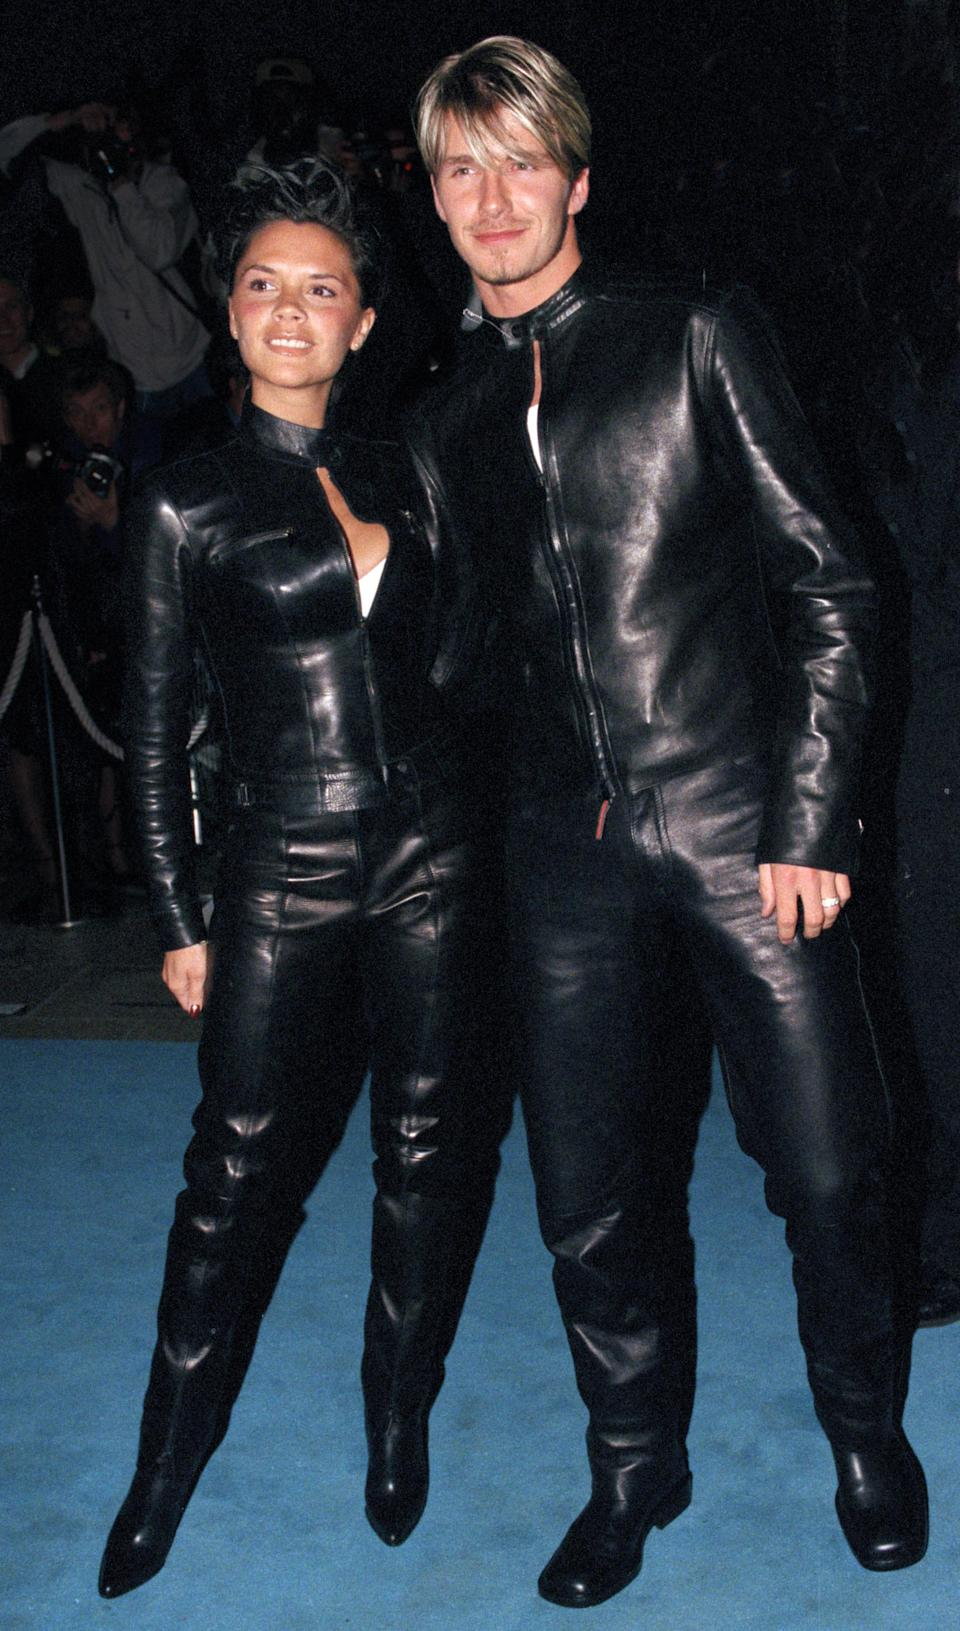 David & Victoria Beckham Attend The 'Versace Club' Gala Party In London. (Photo by Justin Goff\UK Press via Getty Images)